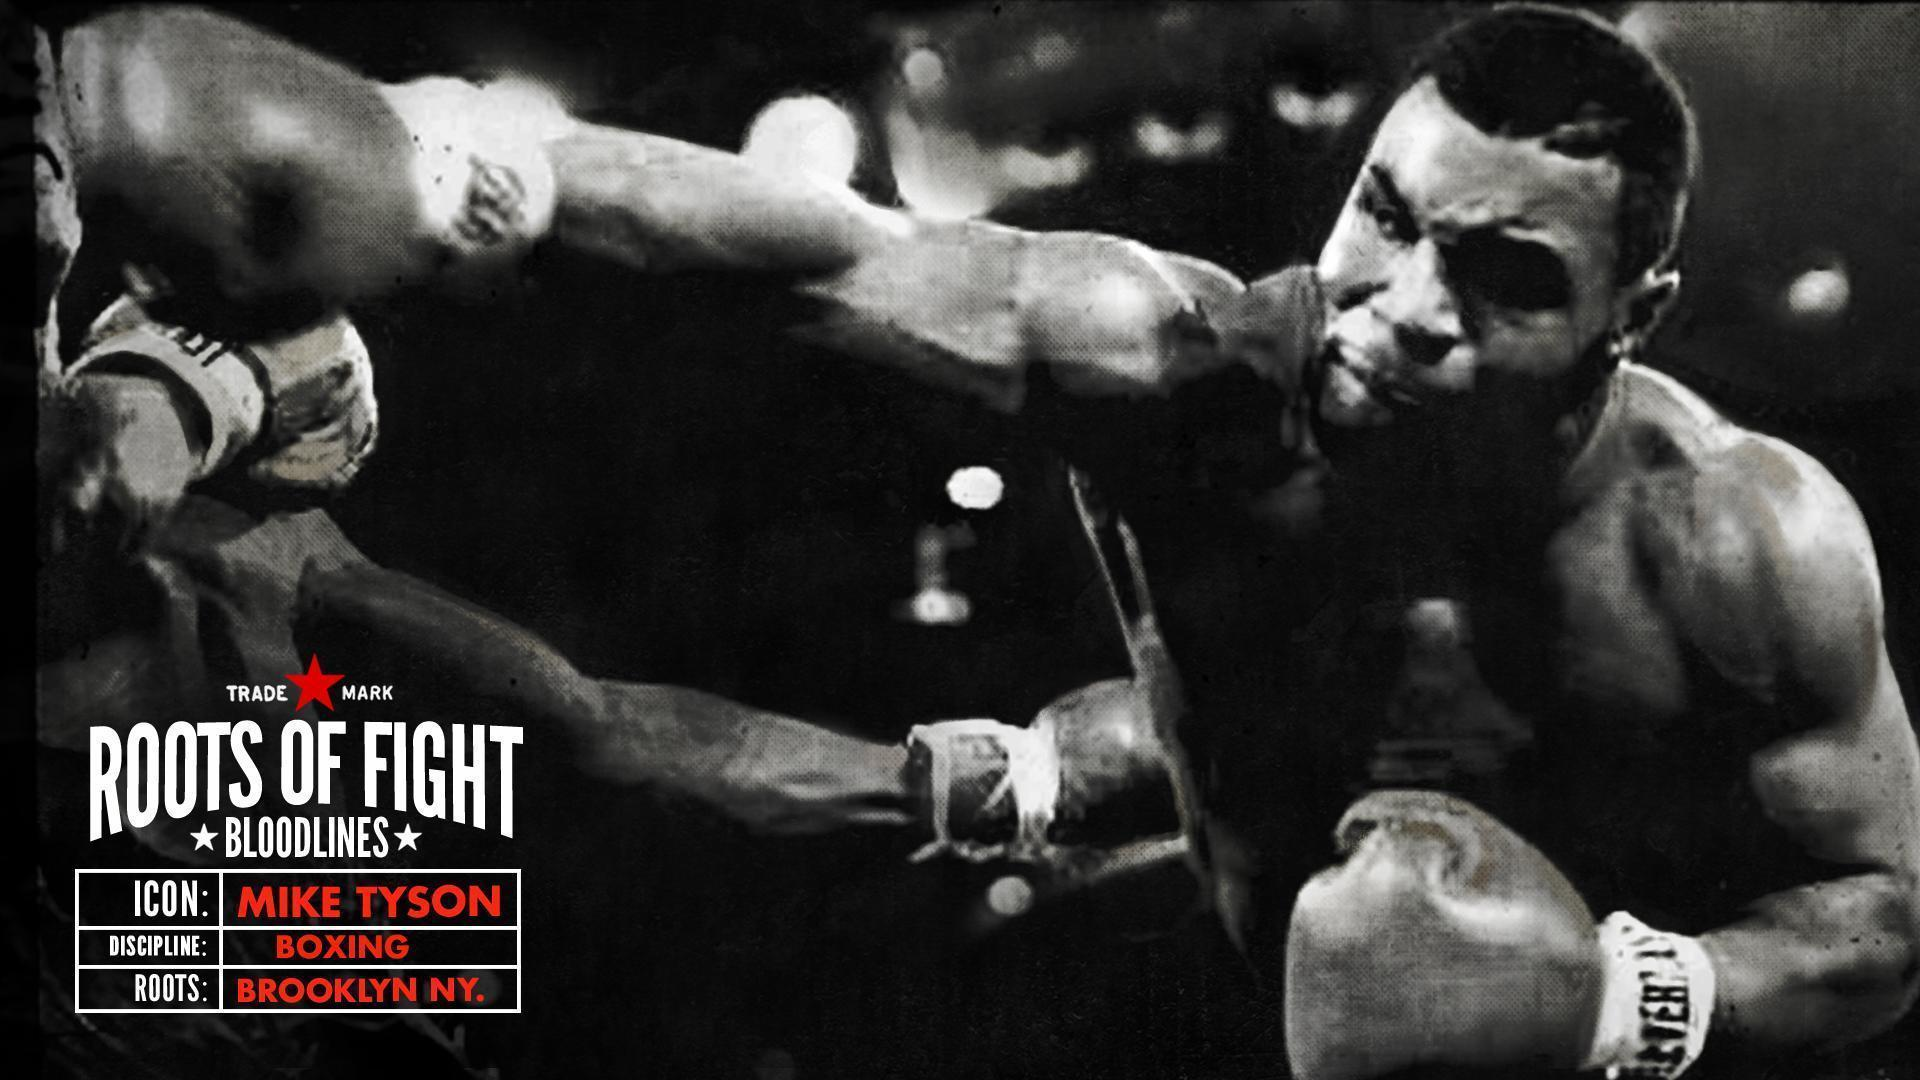 mike tyson wallpapers - photo #6